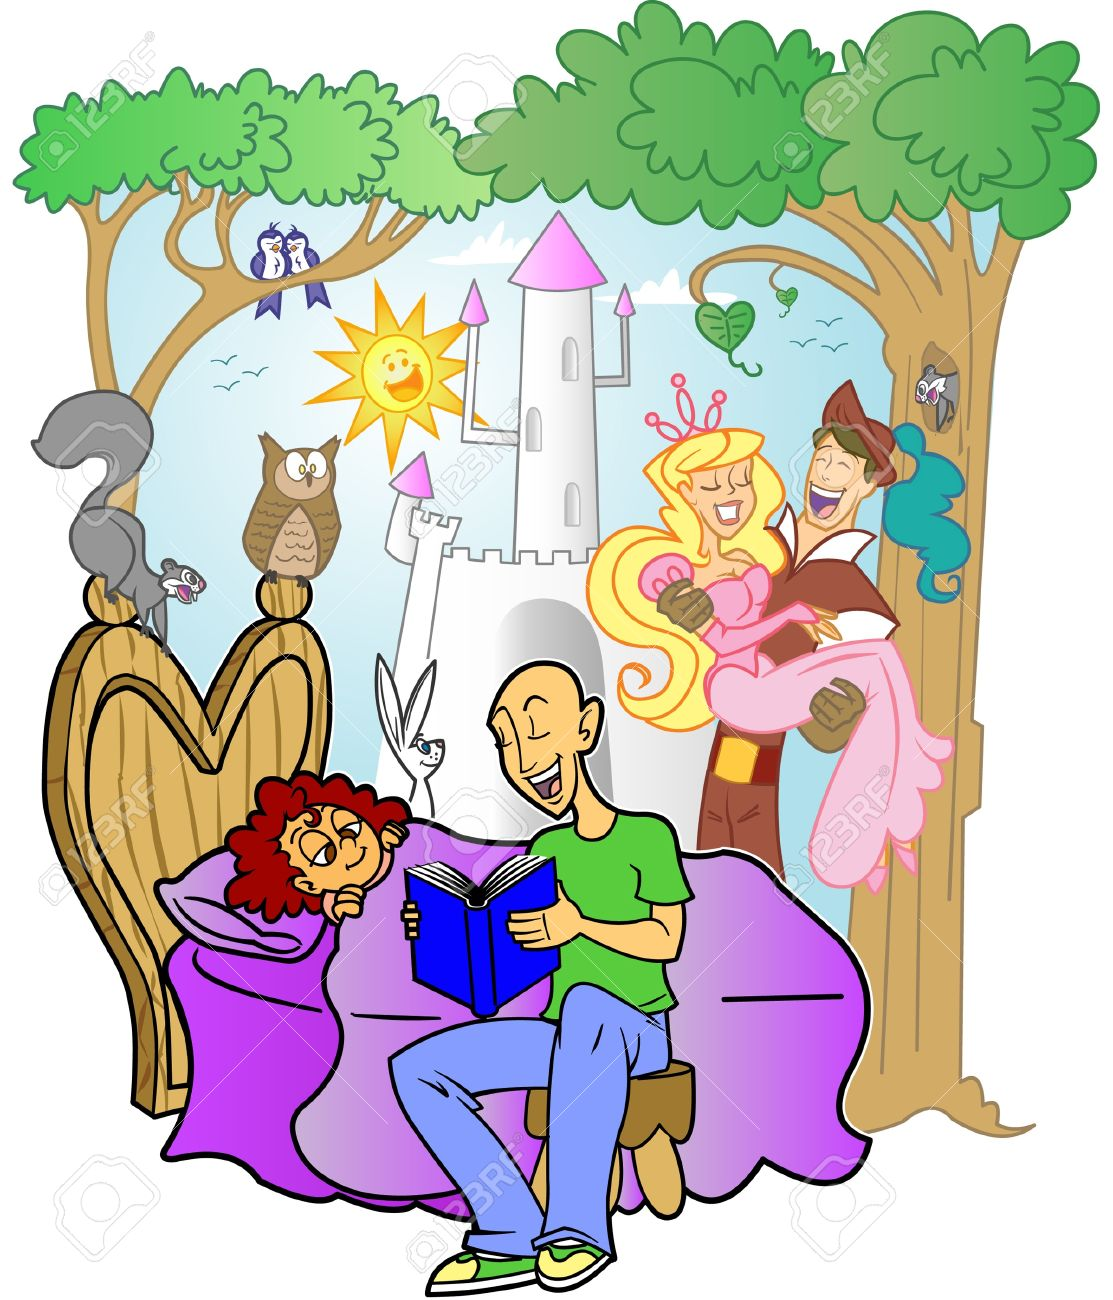 http://hrvatskifokus-2021.ga/wp-content/uploads/2018/04/20306081-an-editable-vector-cartoon-of-a-kind-father-reading-a-fairytale-bedtime-story-to-his-little-girl-whi.jpg